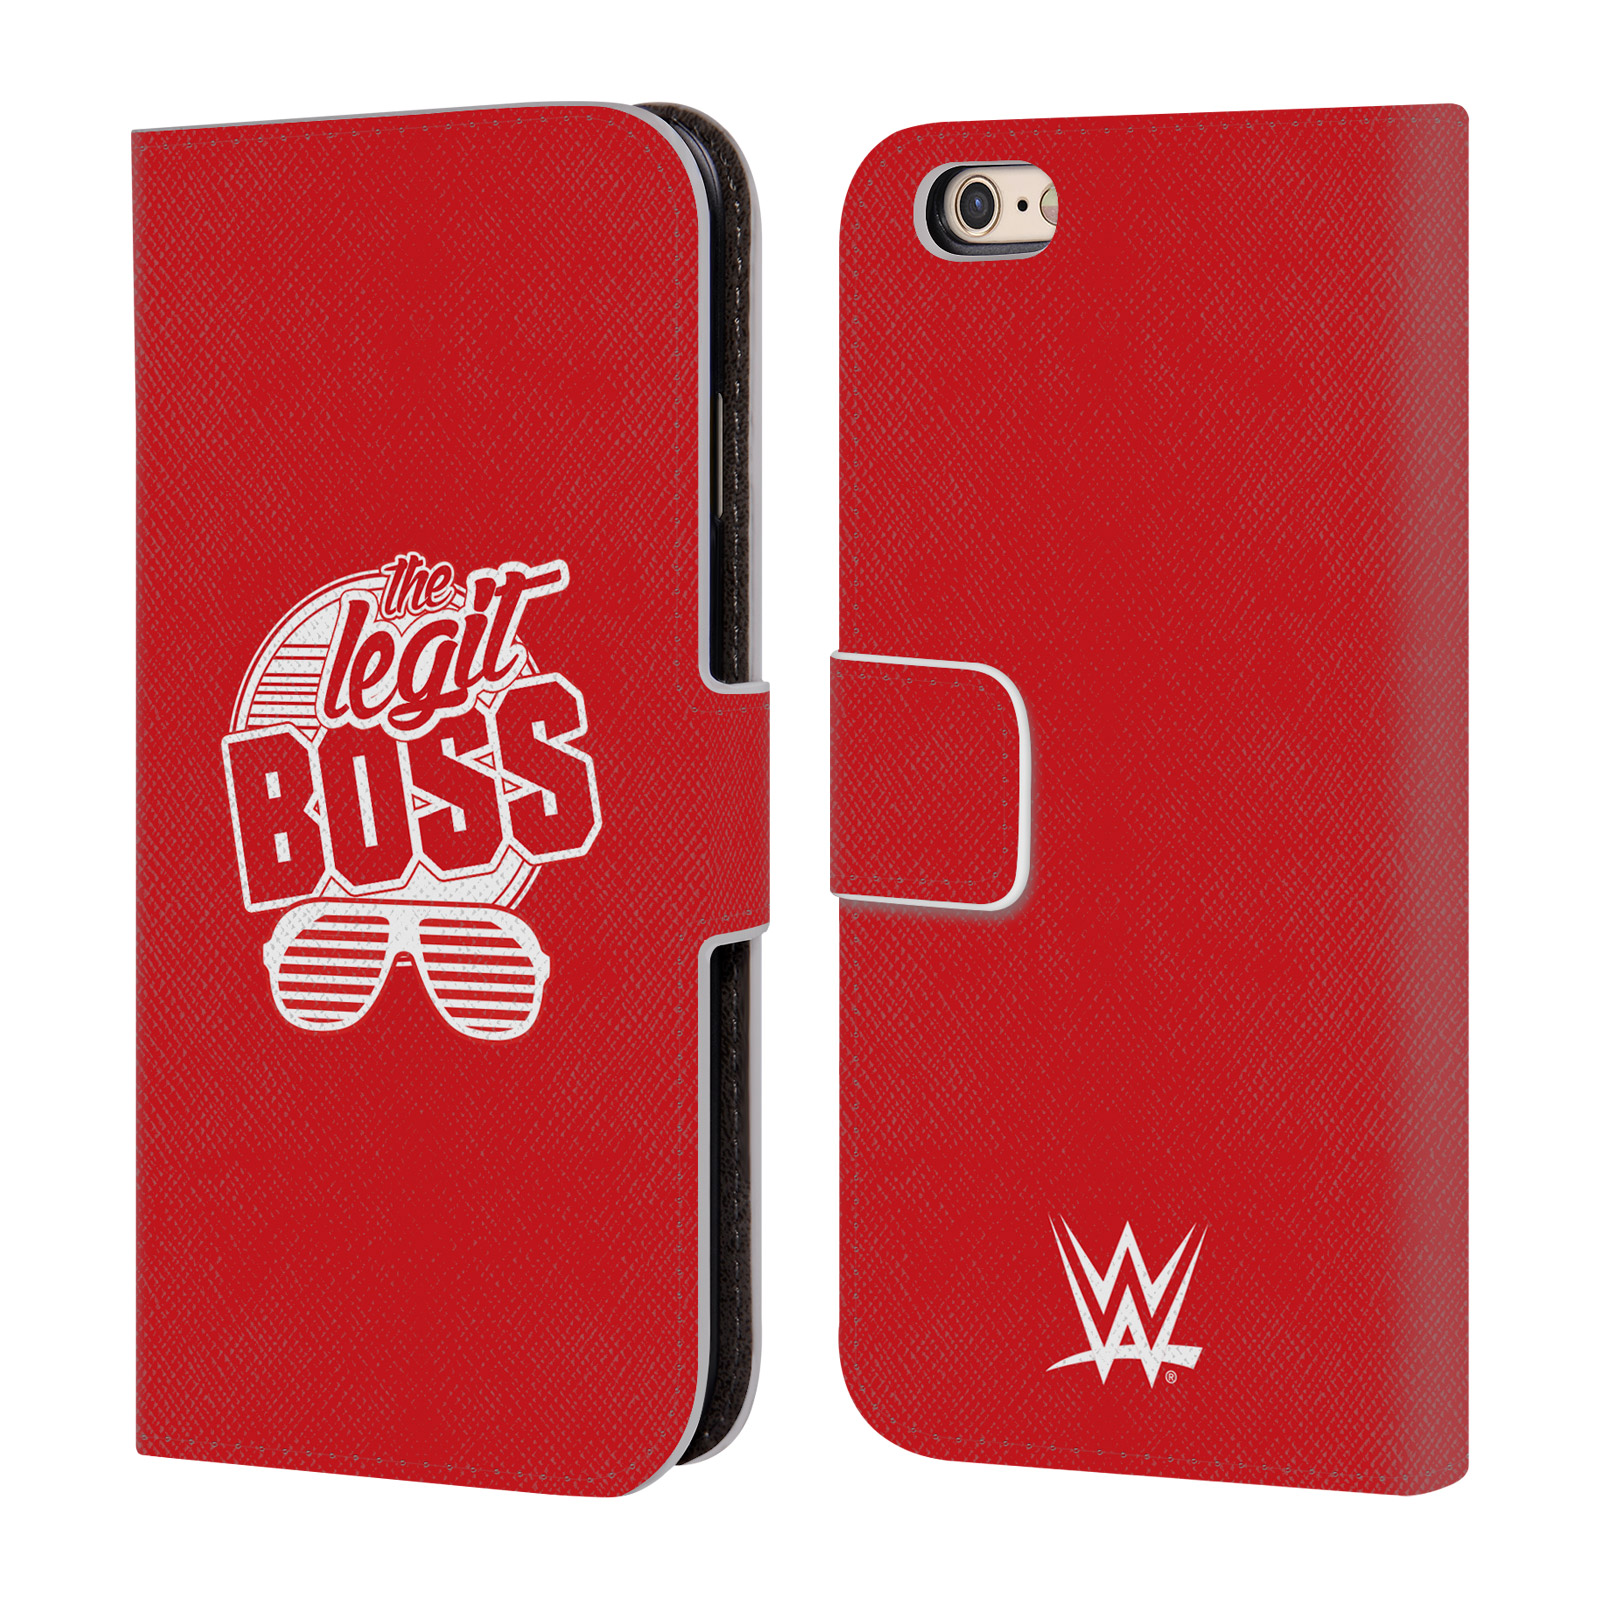 OFFICIAL WWE SASHA BANKS LEATHER BOOK WALLET CASE COVER FOR APPLE IPHONE PHONES